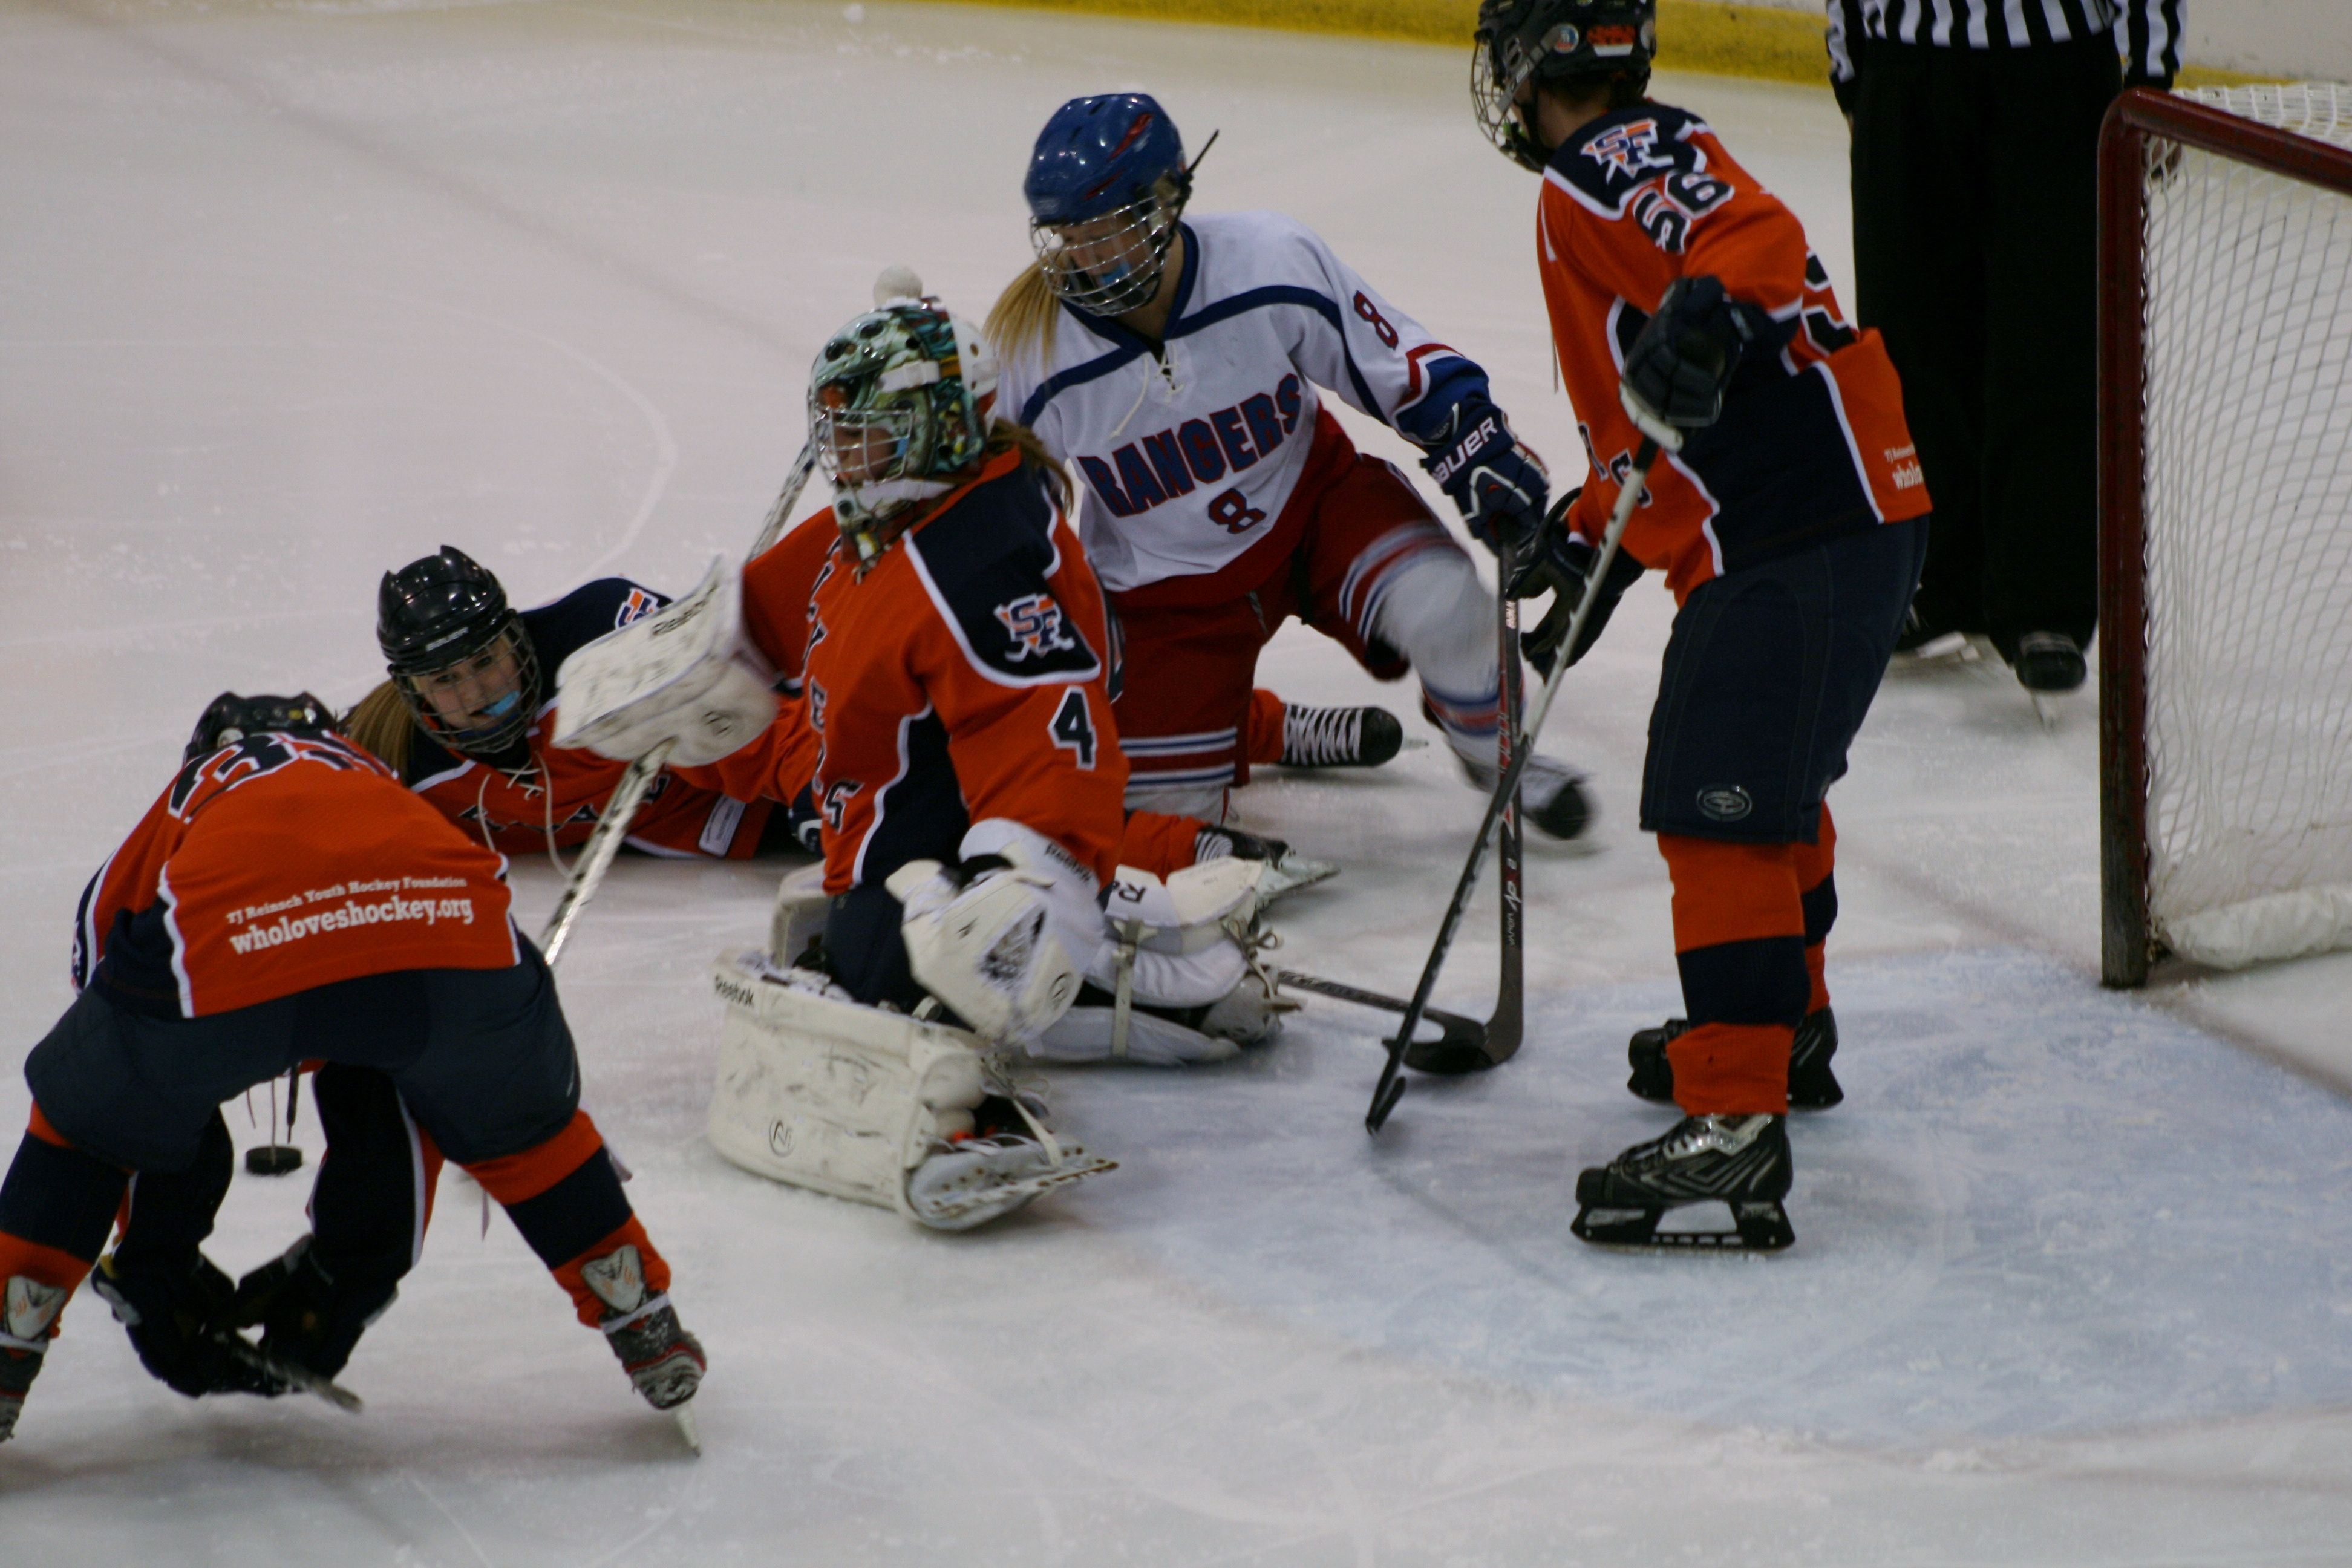 """""""Ninja Saves"""" Photo taken by Angela Drake Photo was taken on 03/09/14. Photo is of Youth Hockey for Sioux Falls Lady Flyers vs. Brookings Rangers in the youth division of Girls Varsity. Players in the photo are Brittany Corcoran — at George E Maas Ice Center, Watertown, SD."""